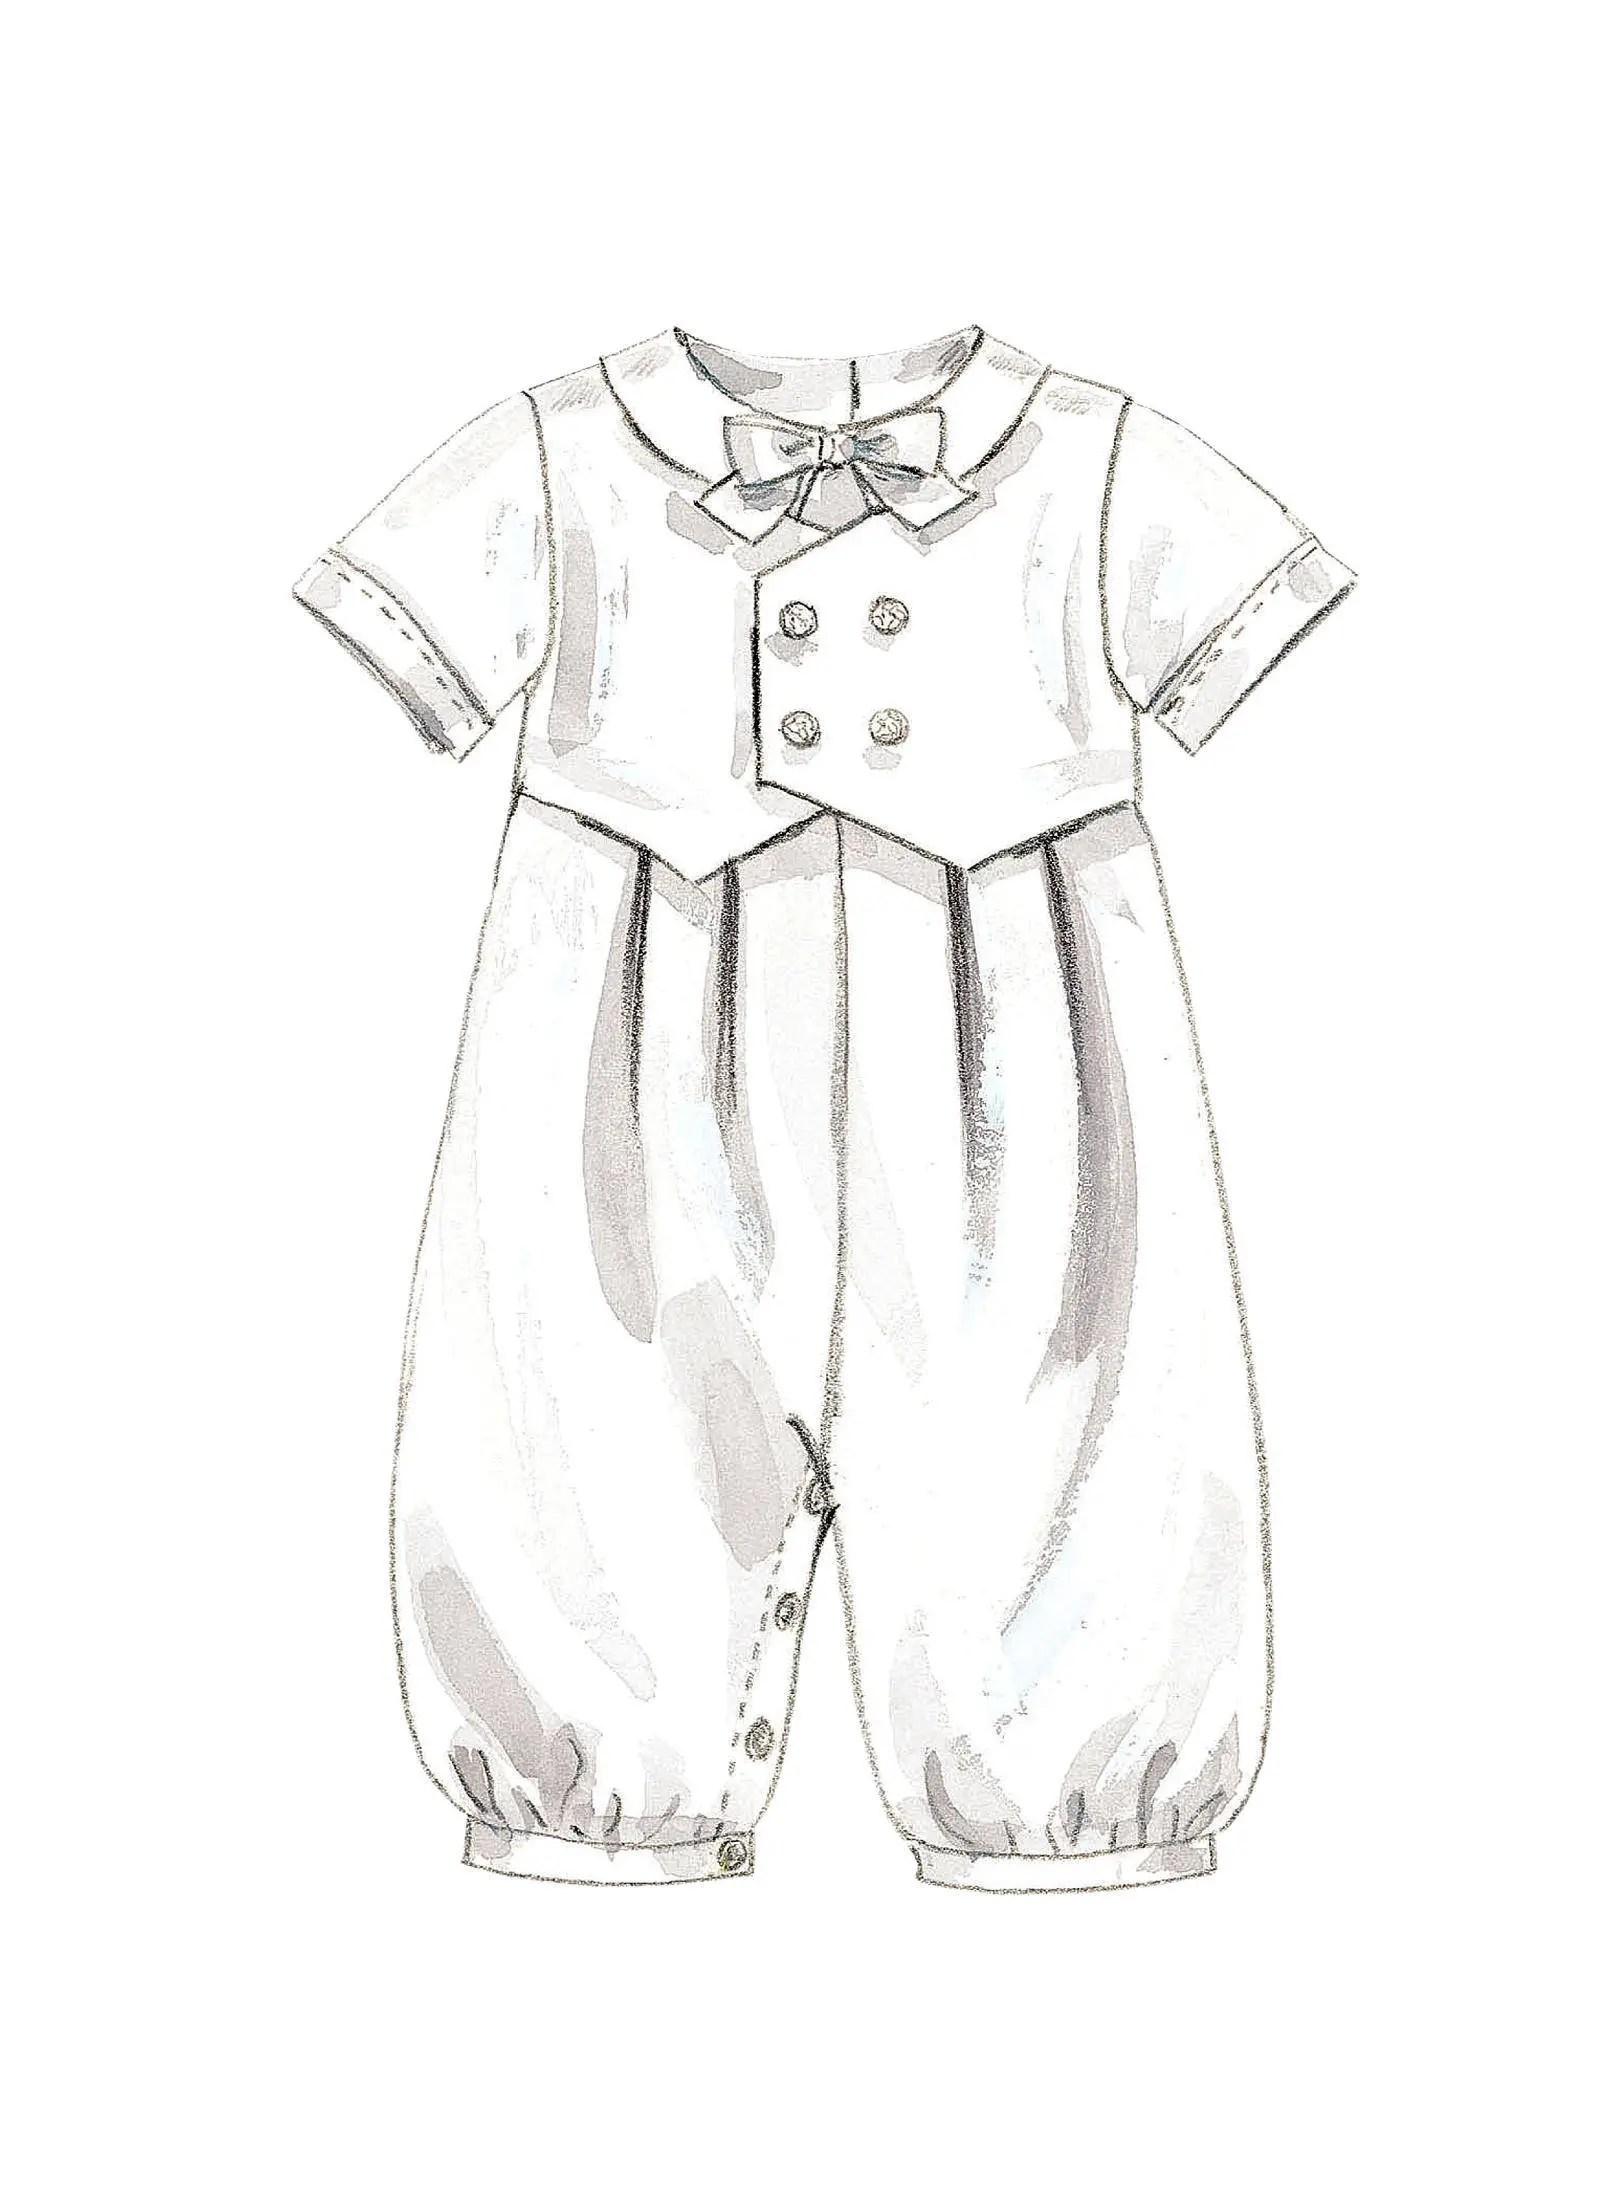 Sewing Pattern for Infants' Christening Gown, Rompers and